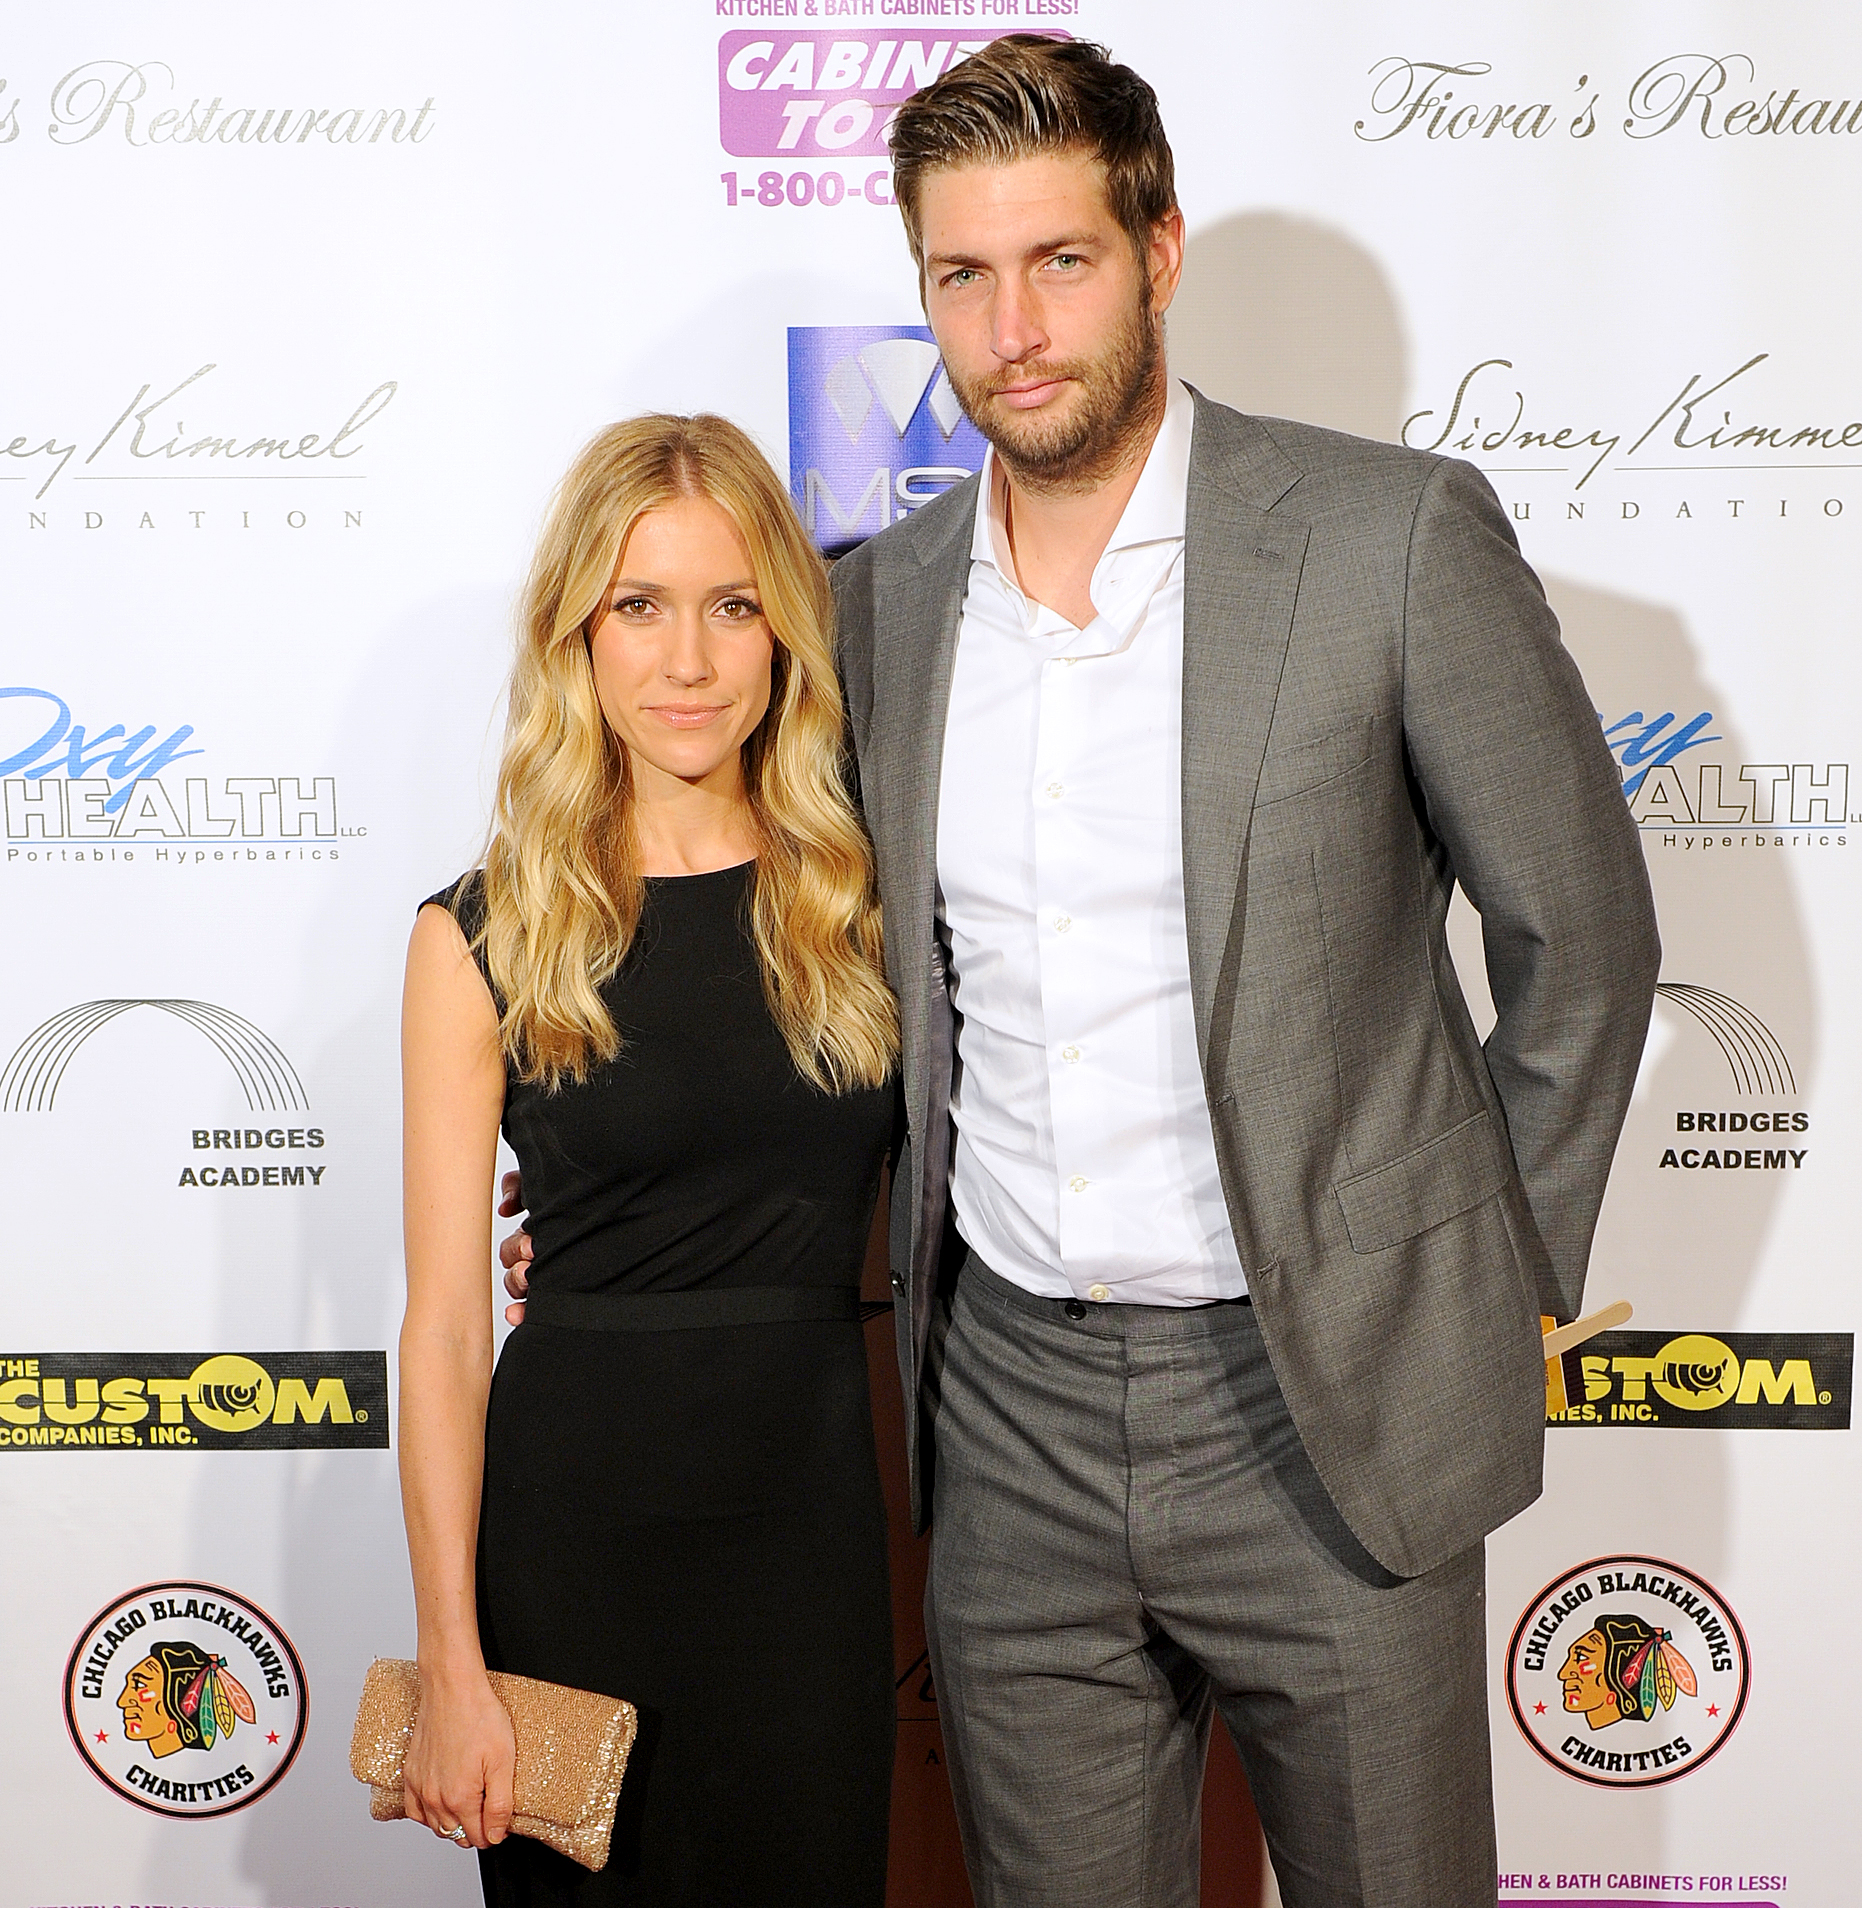 Jay-Cutler-and-Kristin-Cavalleri - Jay Cutler and Kristin Cavalleri attend the Dancing with the Stars Charity event hosted by Jenny McCarthy on August 24, 2013 at Hotel Baker in St Charles, Illinois.